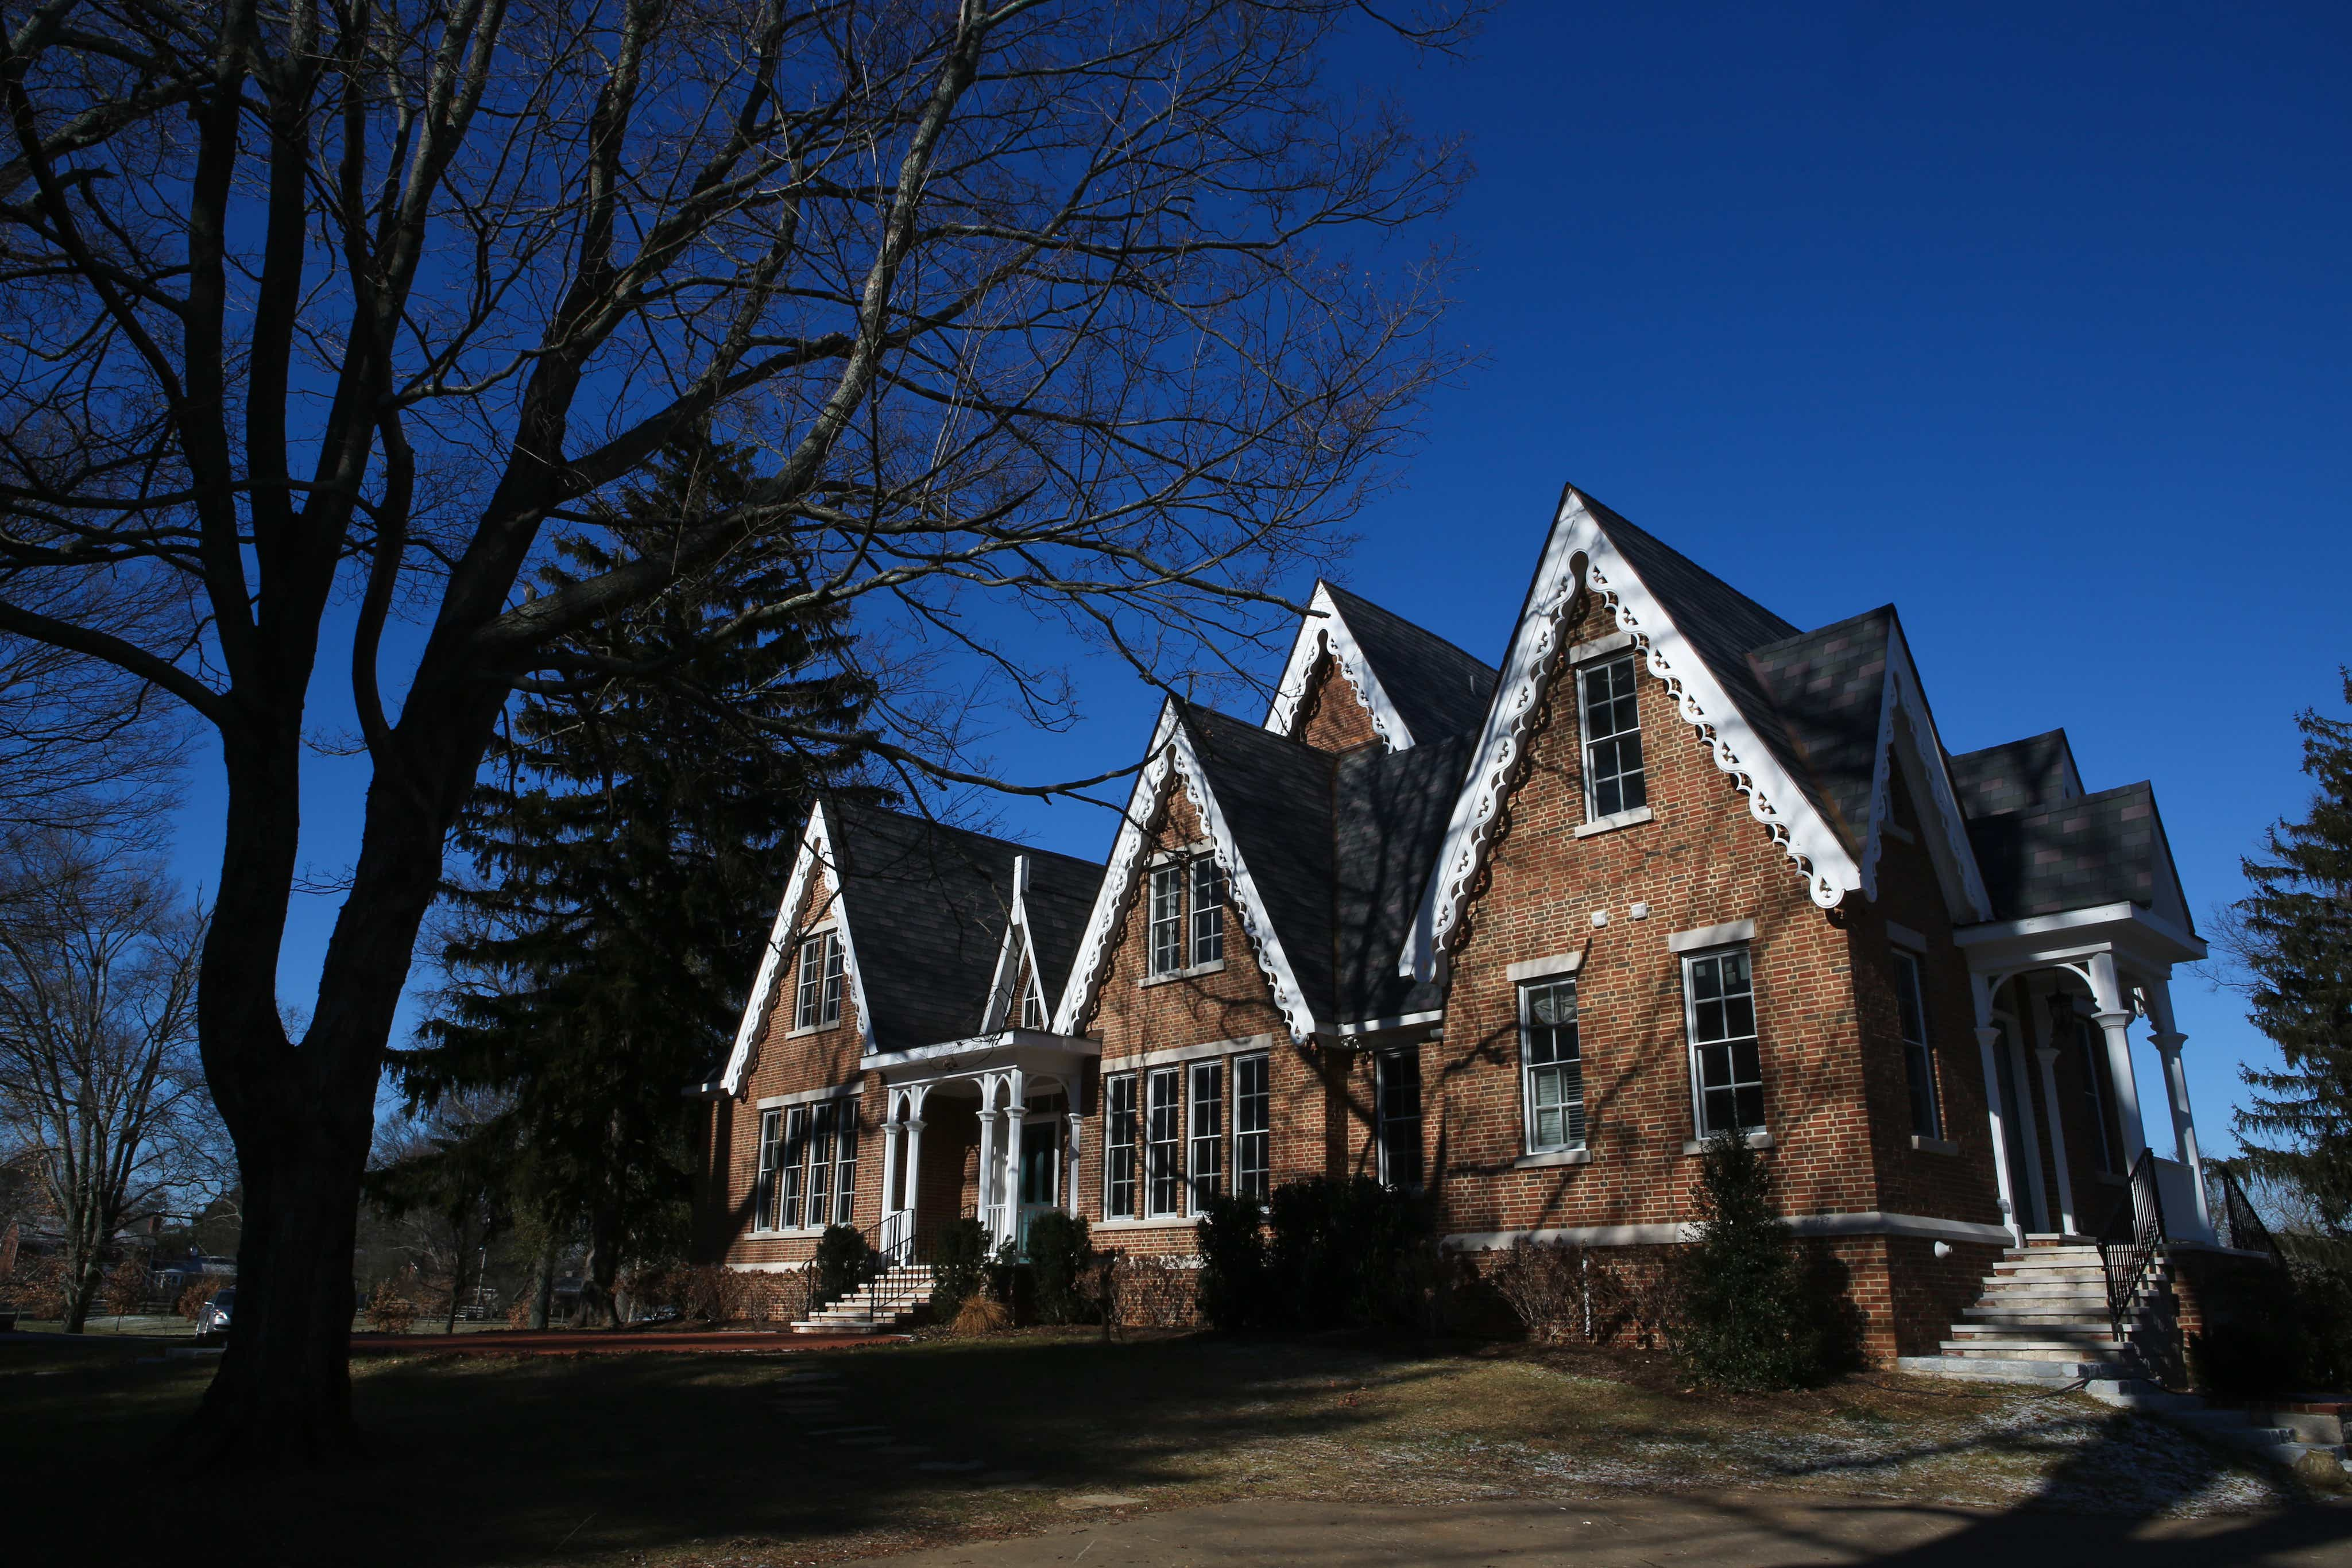 What's going on with Gov  Matt Bevin's house?